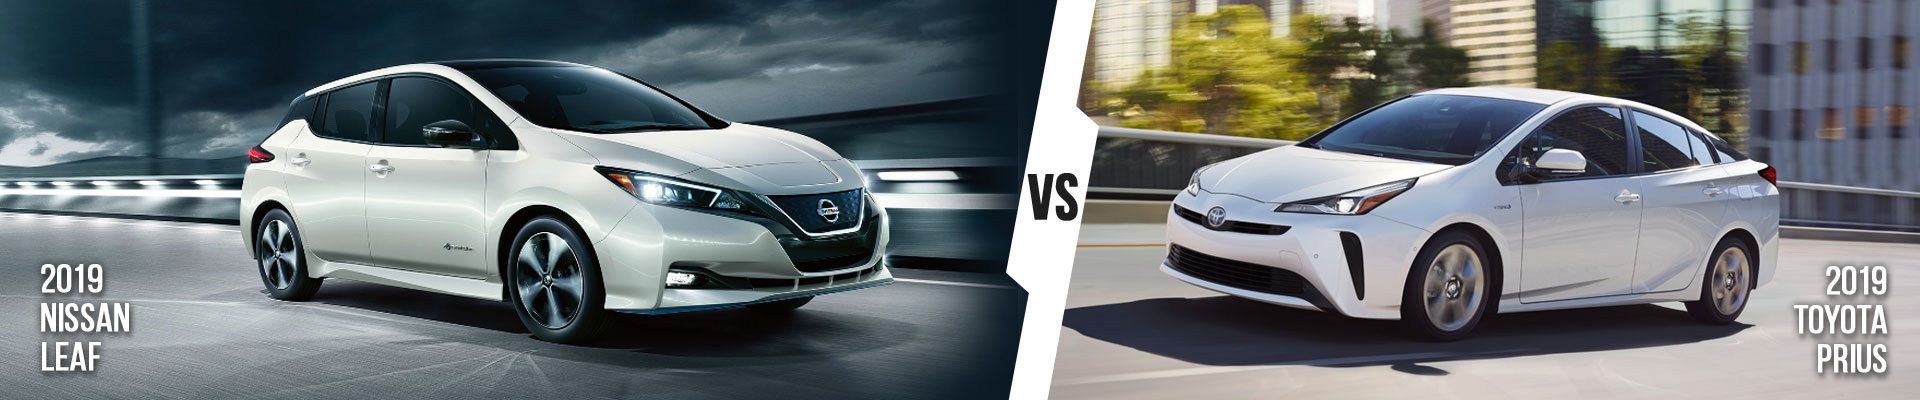 Examine The Nissan Leaf Vs. The Toyota Prius In Fort Myers, FL